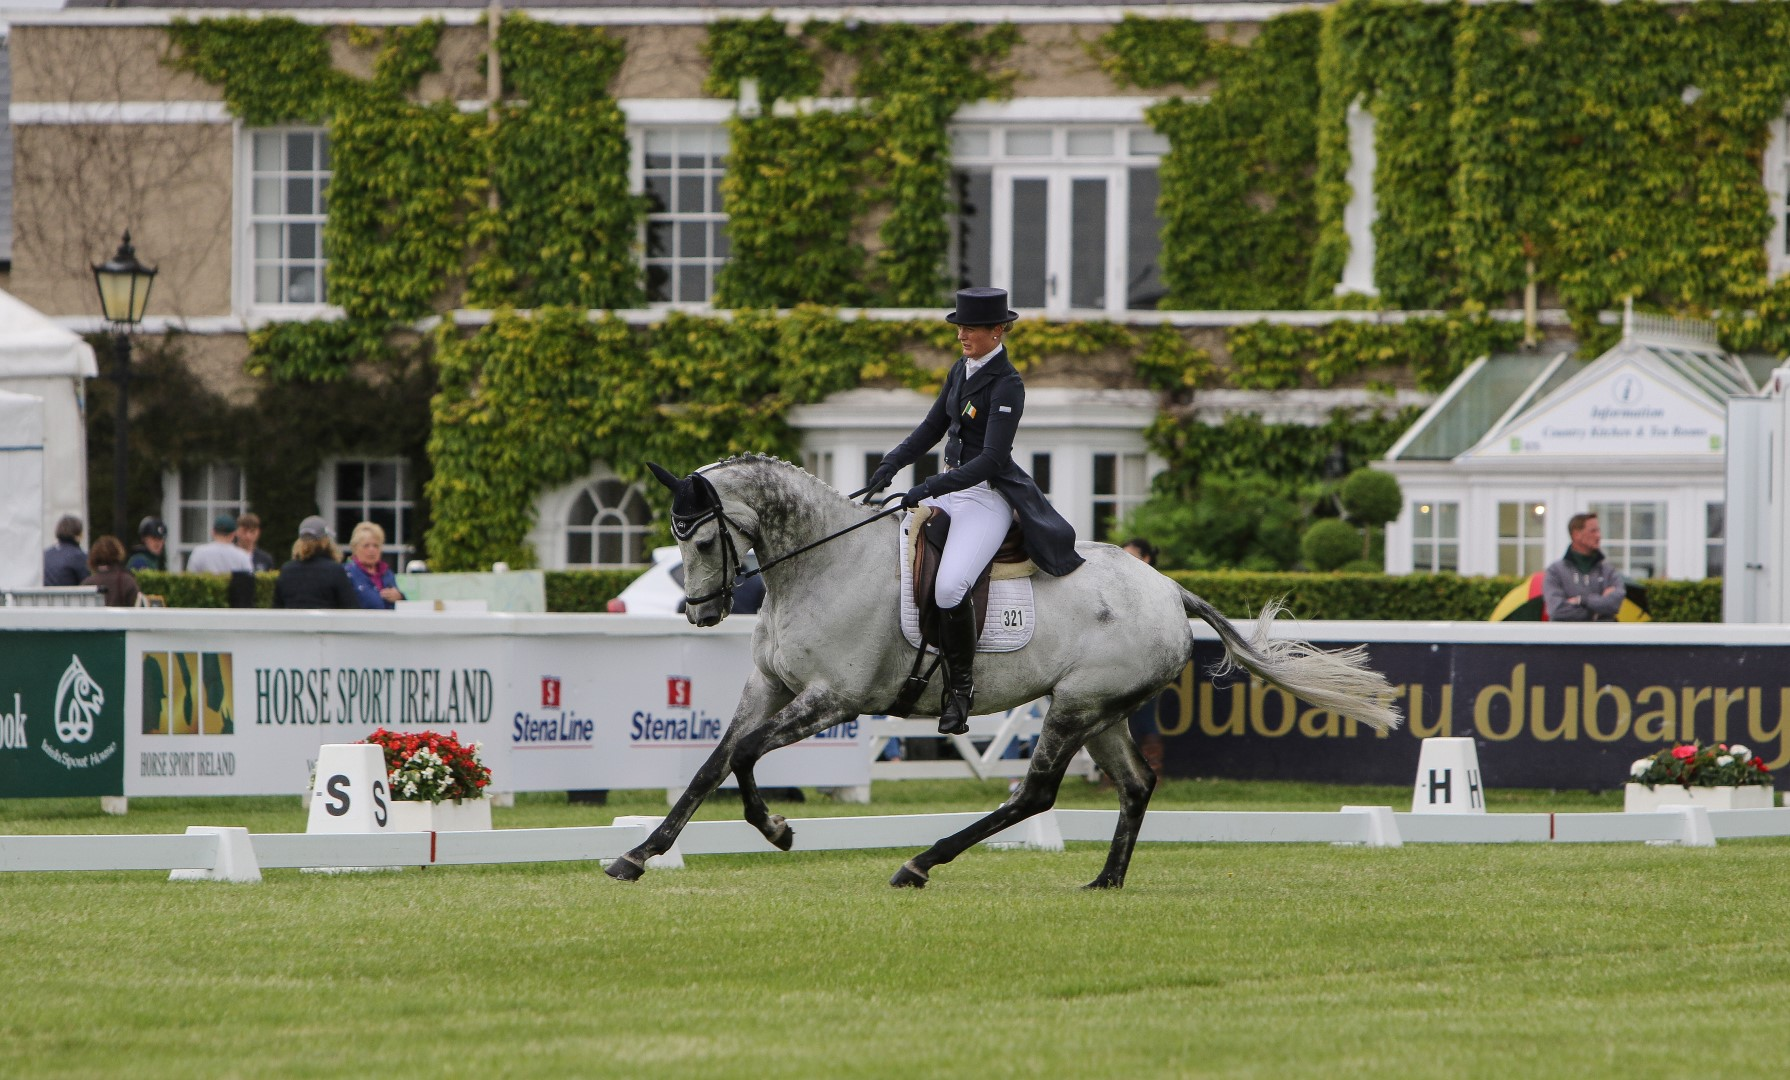 Horseracing Offspring And Eventing Stars Shine At